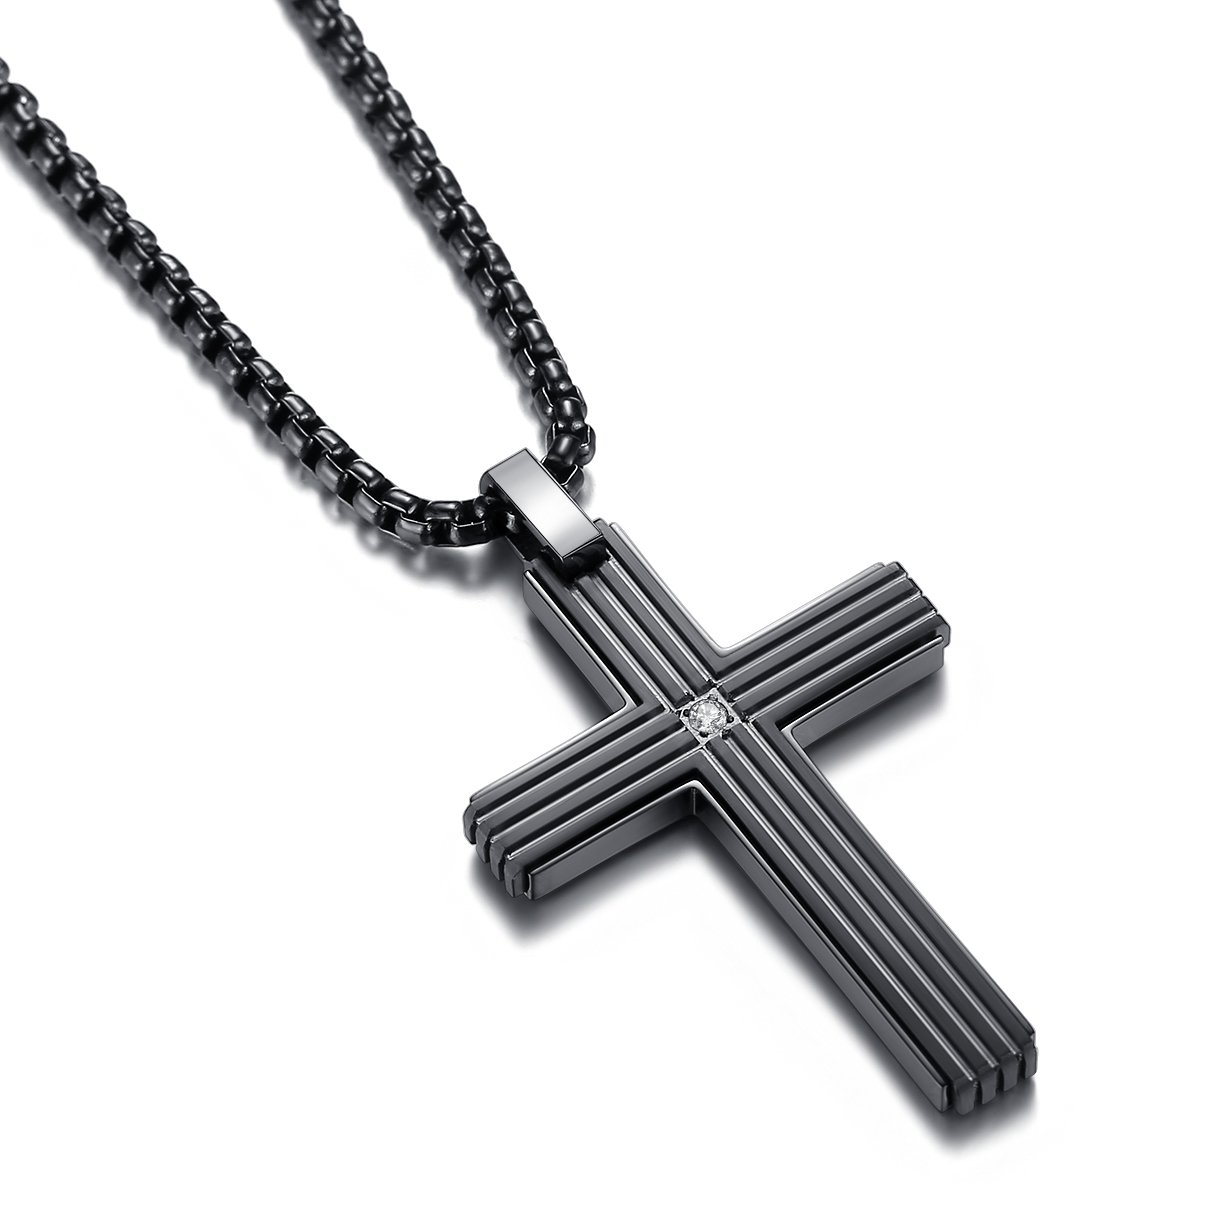 Reve Jewelry Simple Stainless Steel CZ Inlay Cross Pendant Necklace for Men Women, 20''-24'' Rolo Chain (Black: 24'' Chain)